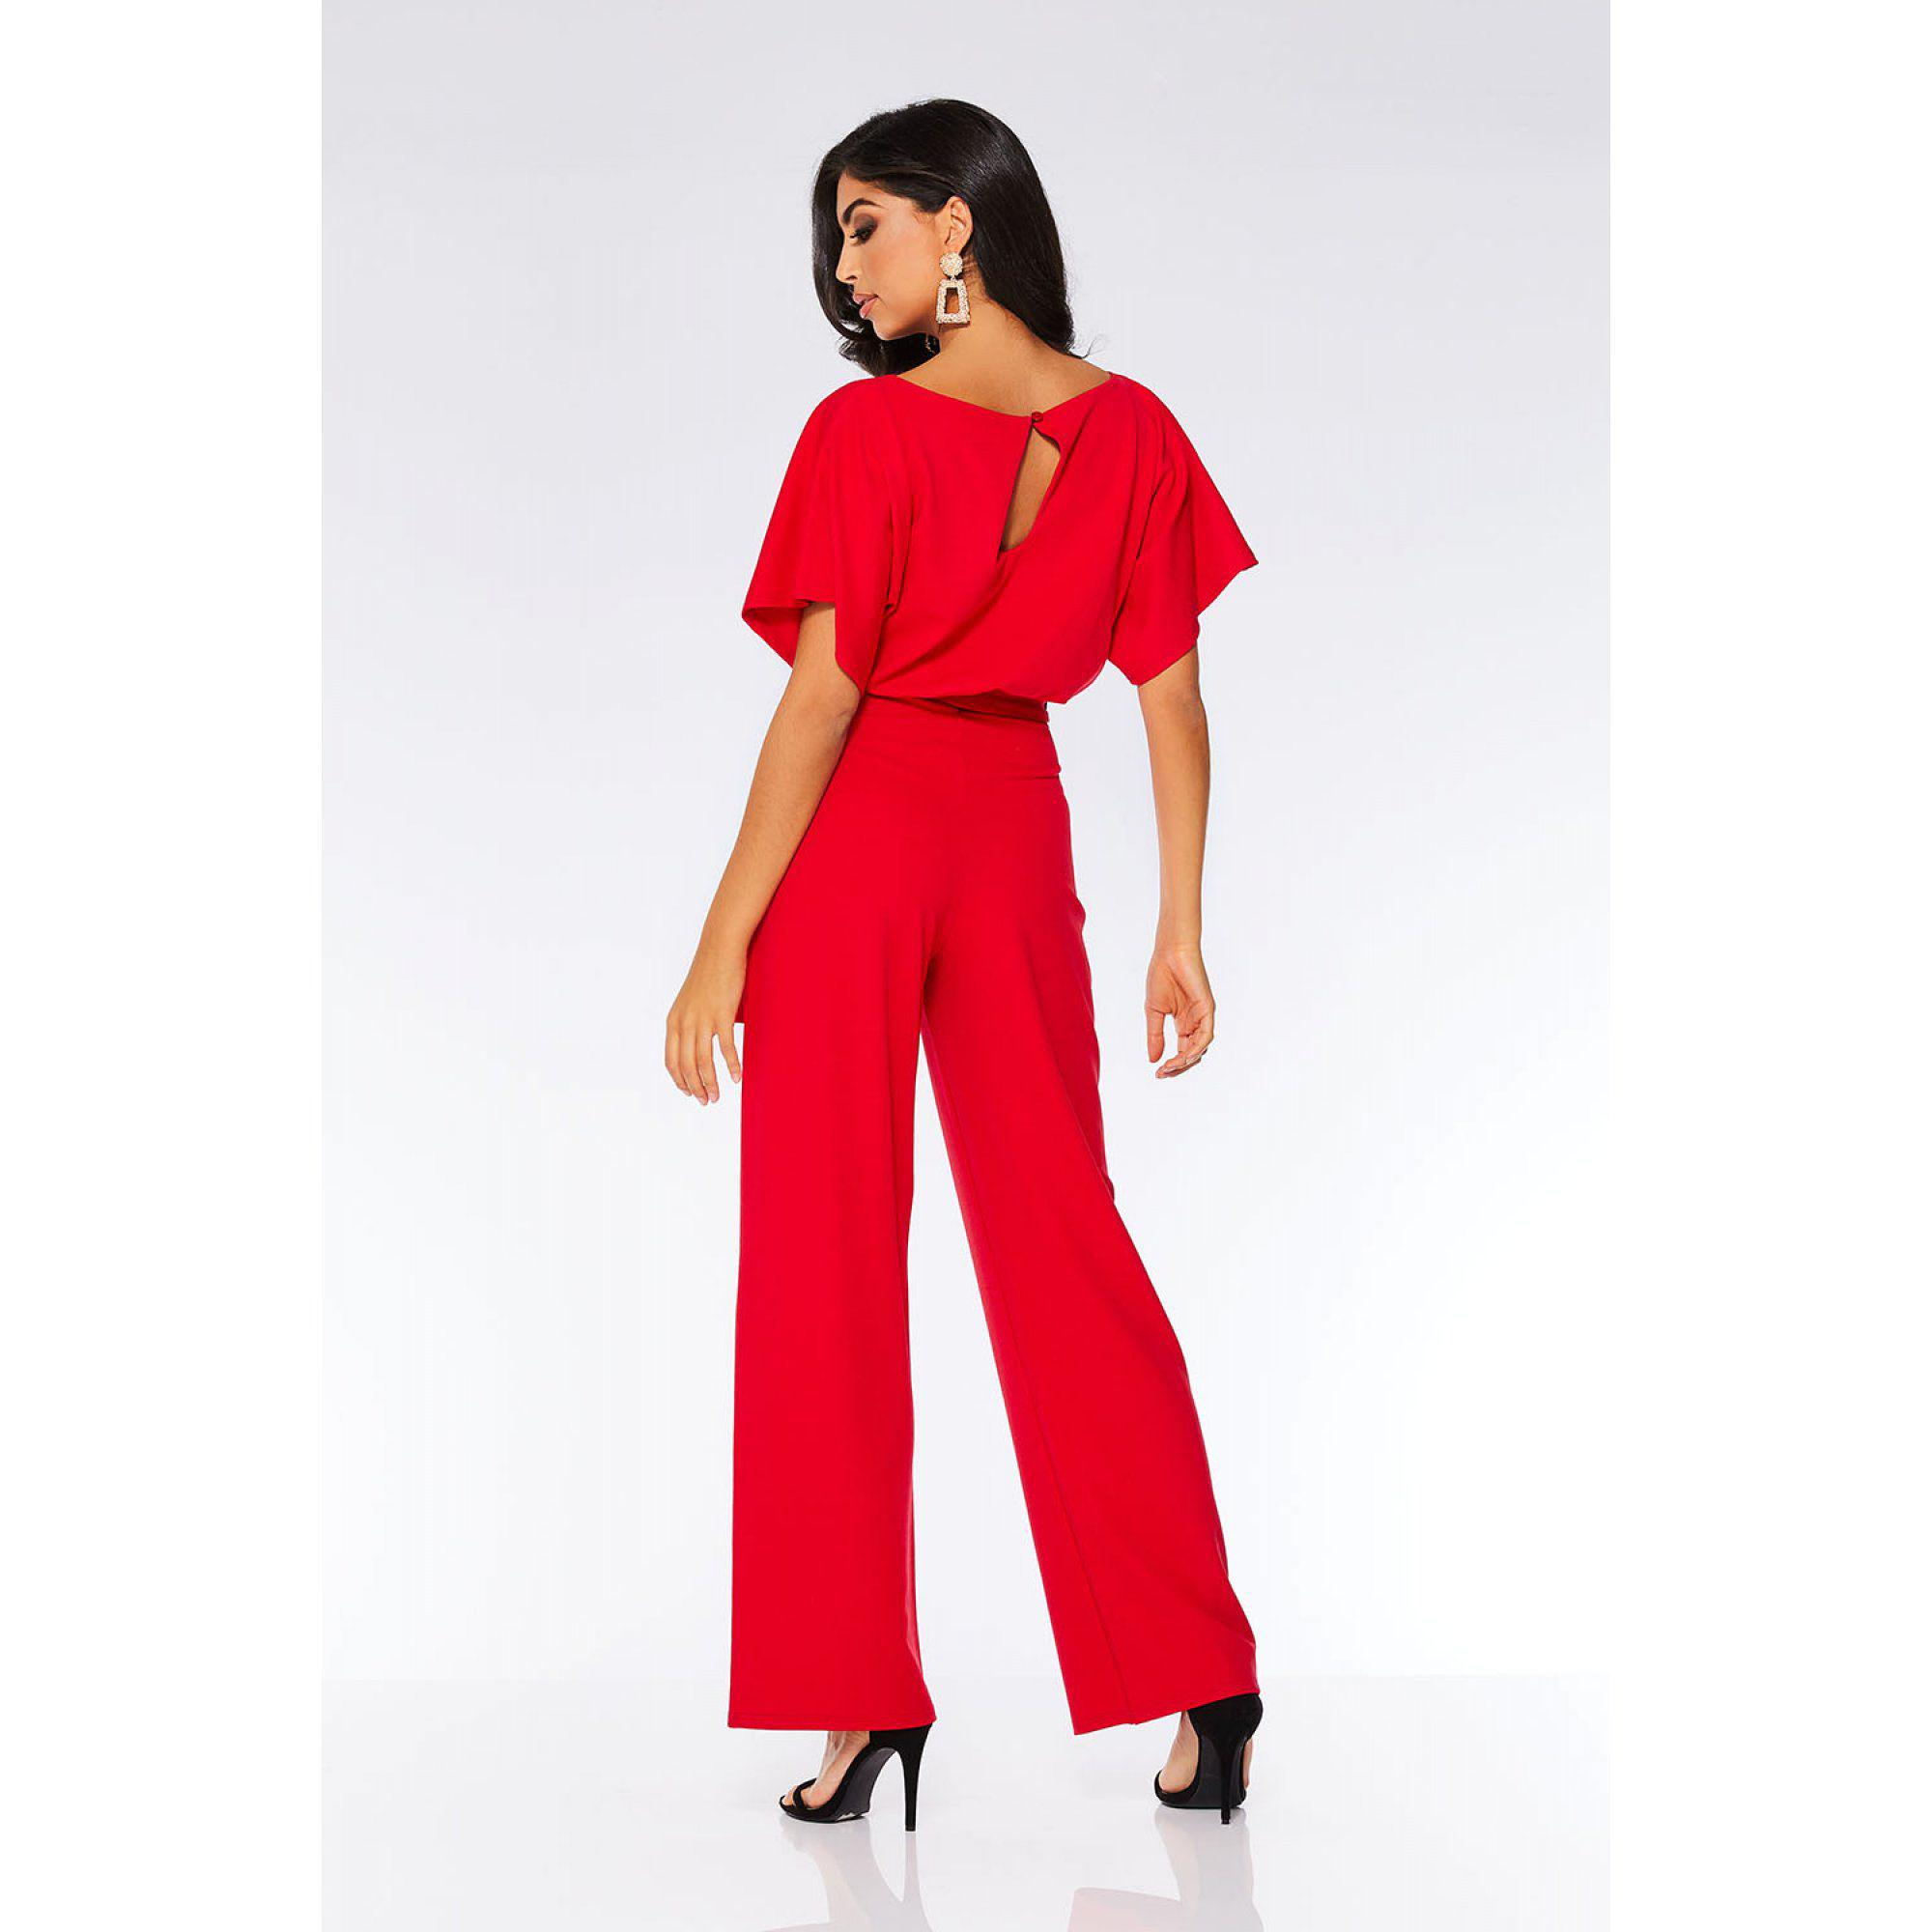 a5e27fab93 Quiz Red Batwing Belted Palazzo Jumpsuit in Red - Lyst